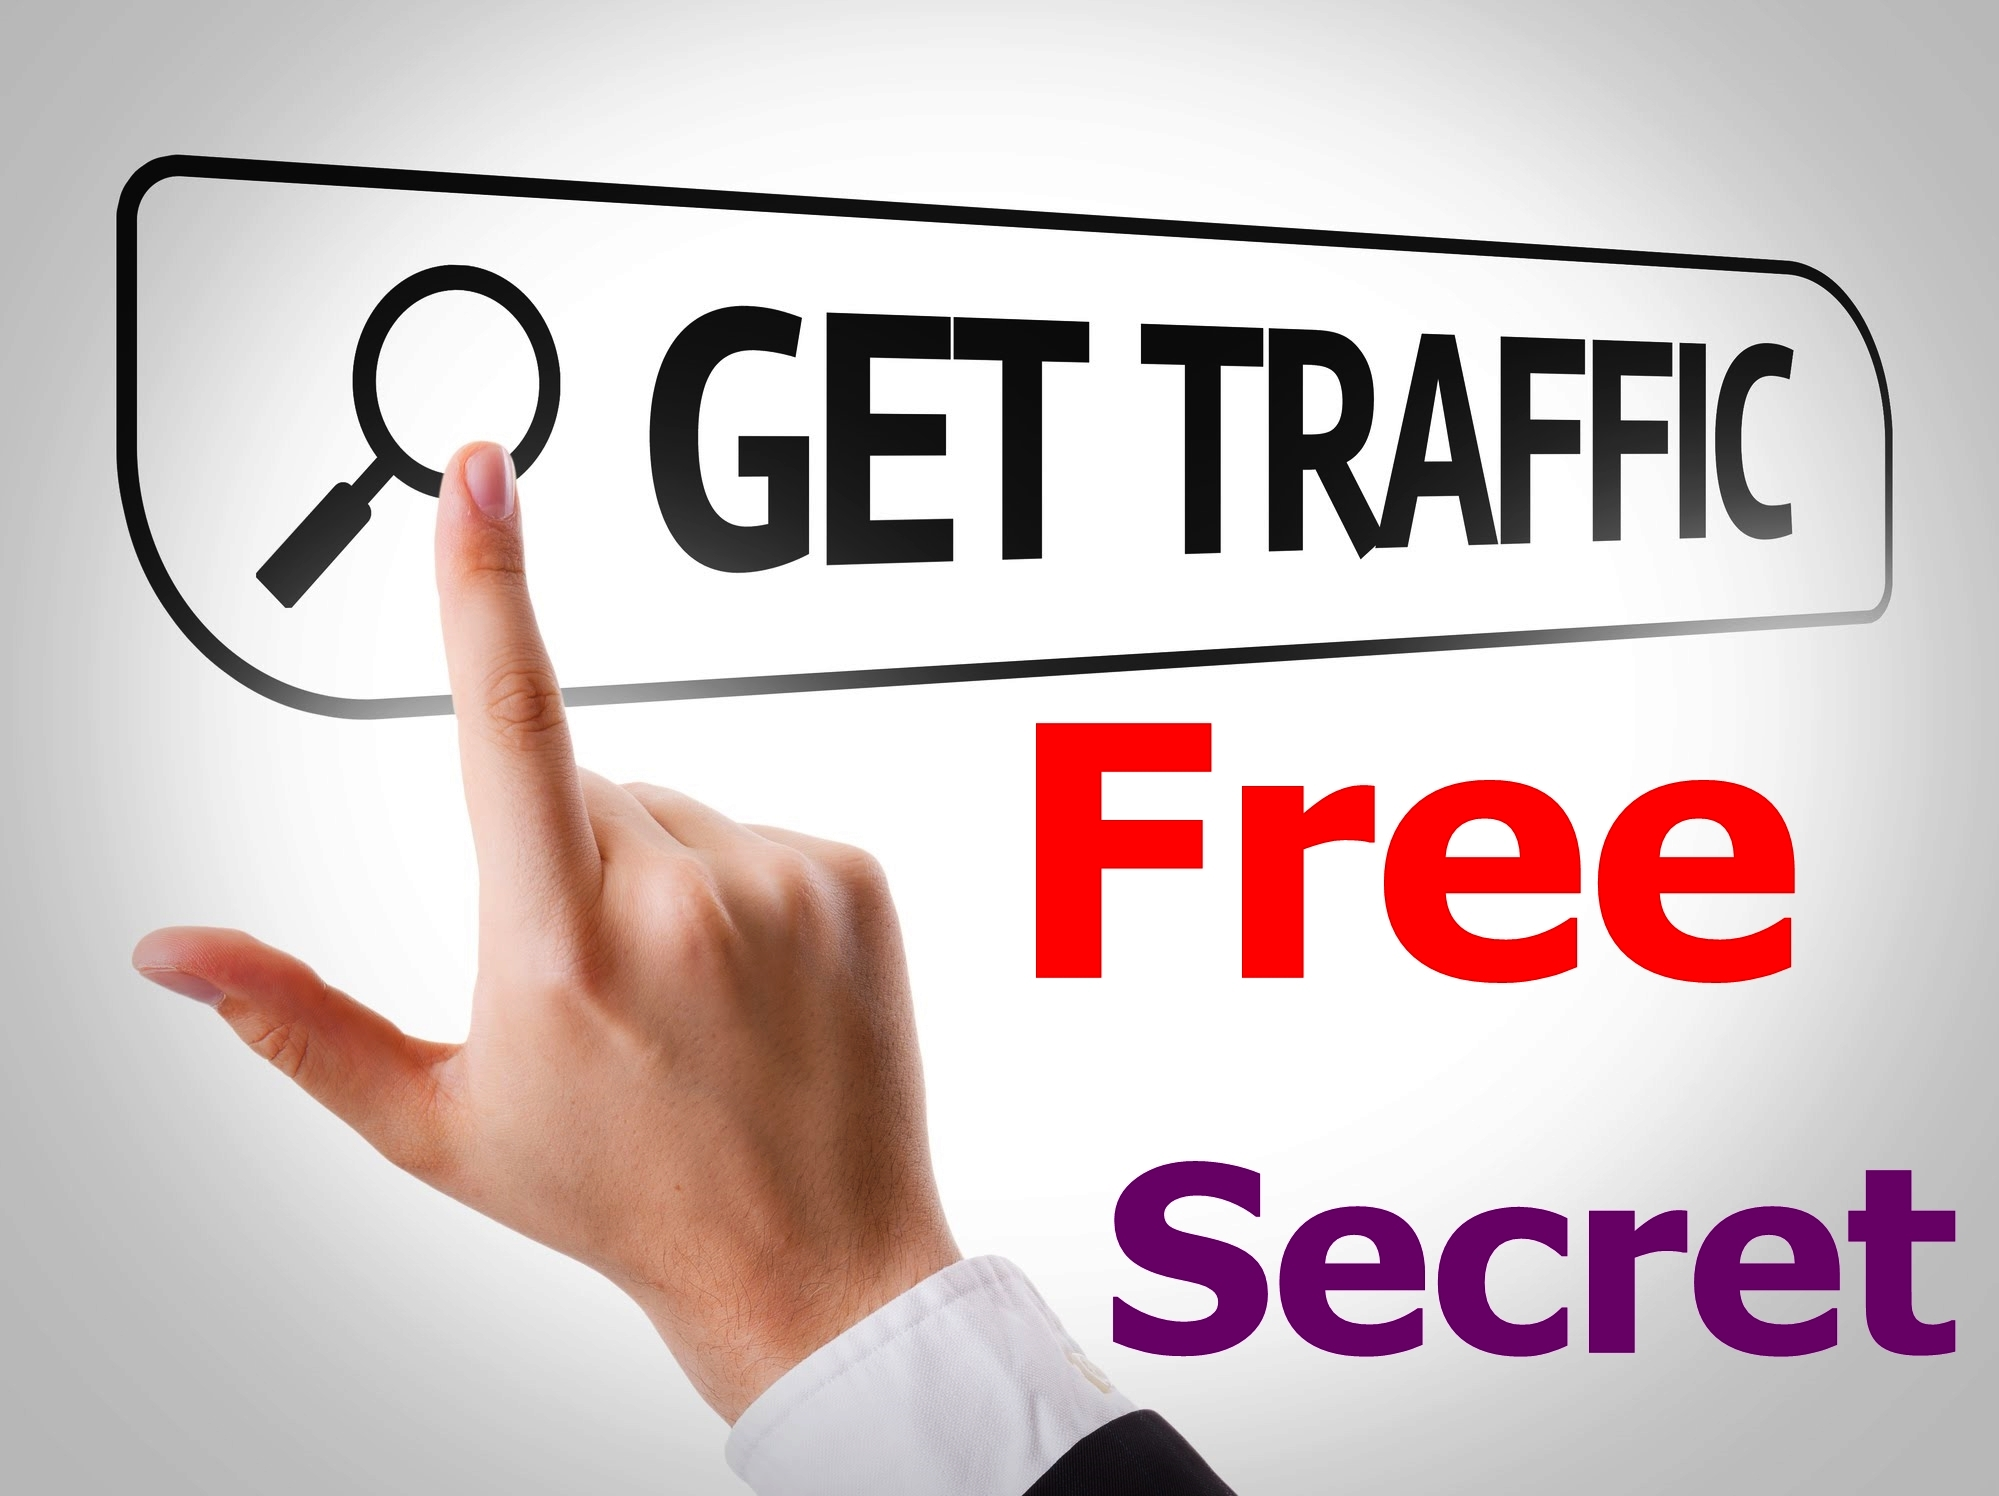 TRAFFIC Secret - I Will Show You SECRET Website Where I Get 25000 Unique High Converting Daily HUMAN Traffic FOREVER -Small Amount Massive Traffic -Limited Time Offer Order Now !!!